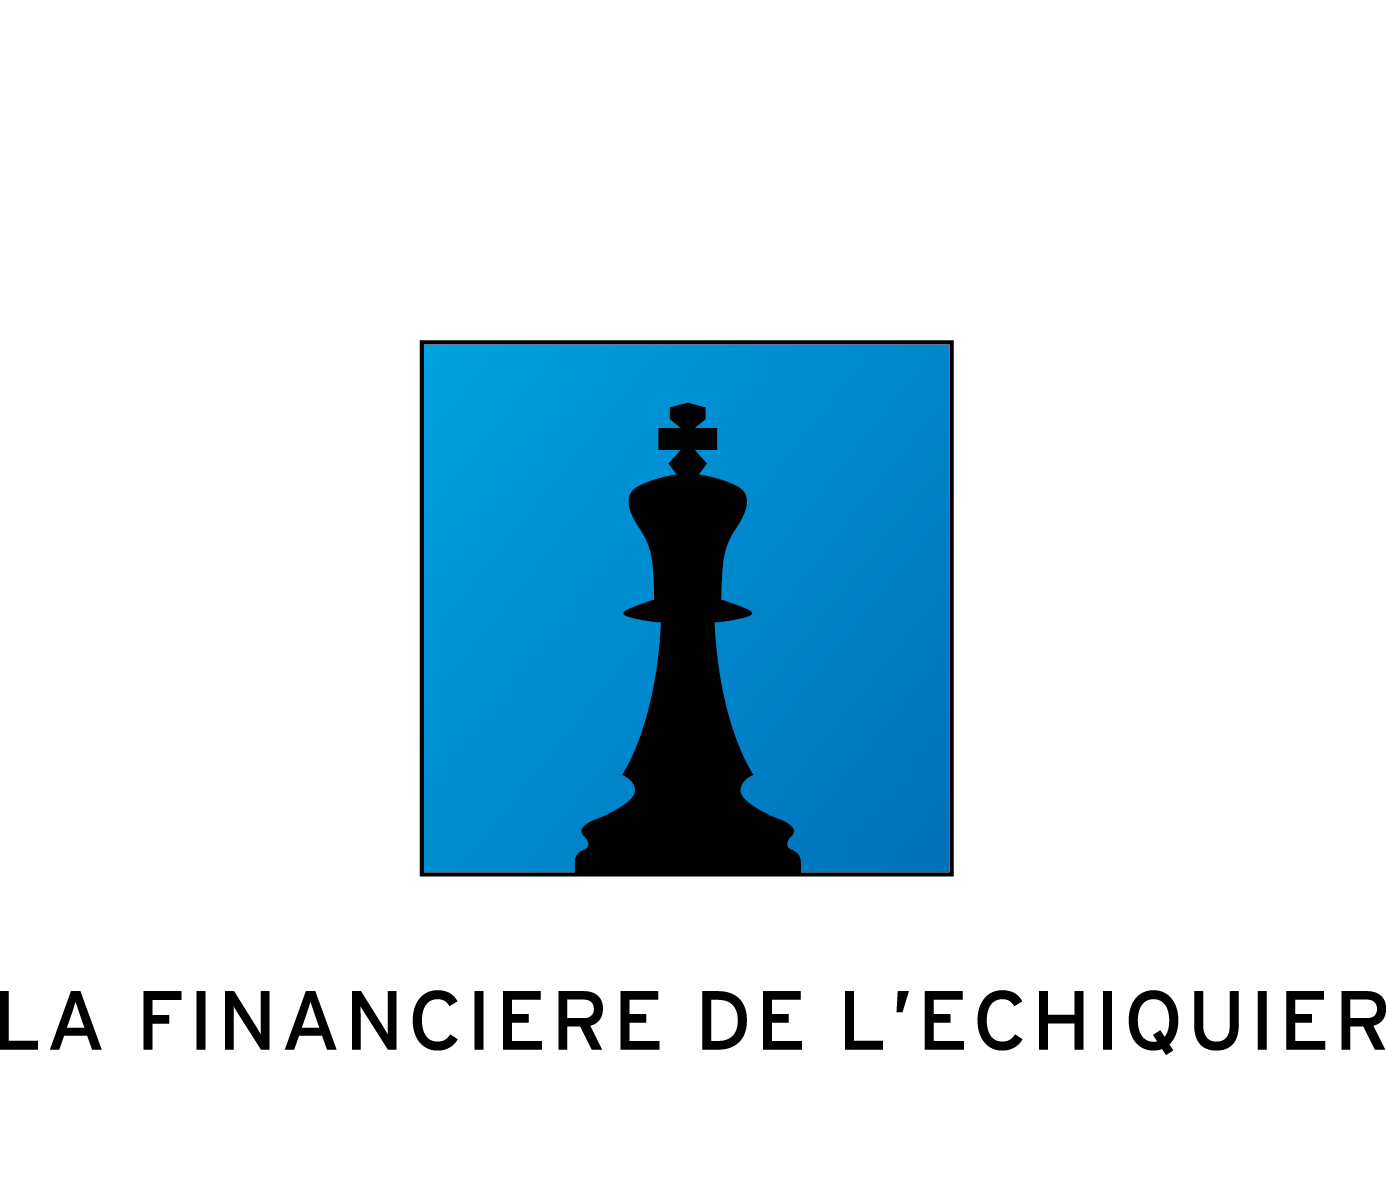 Financiere de l'Echiquier